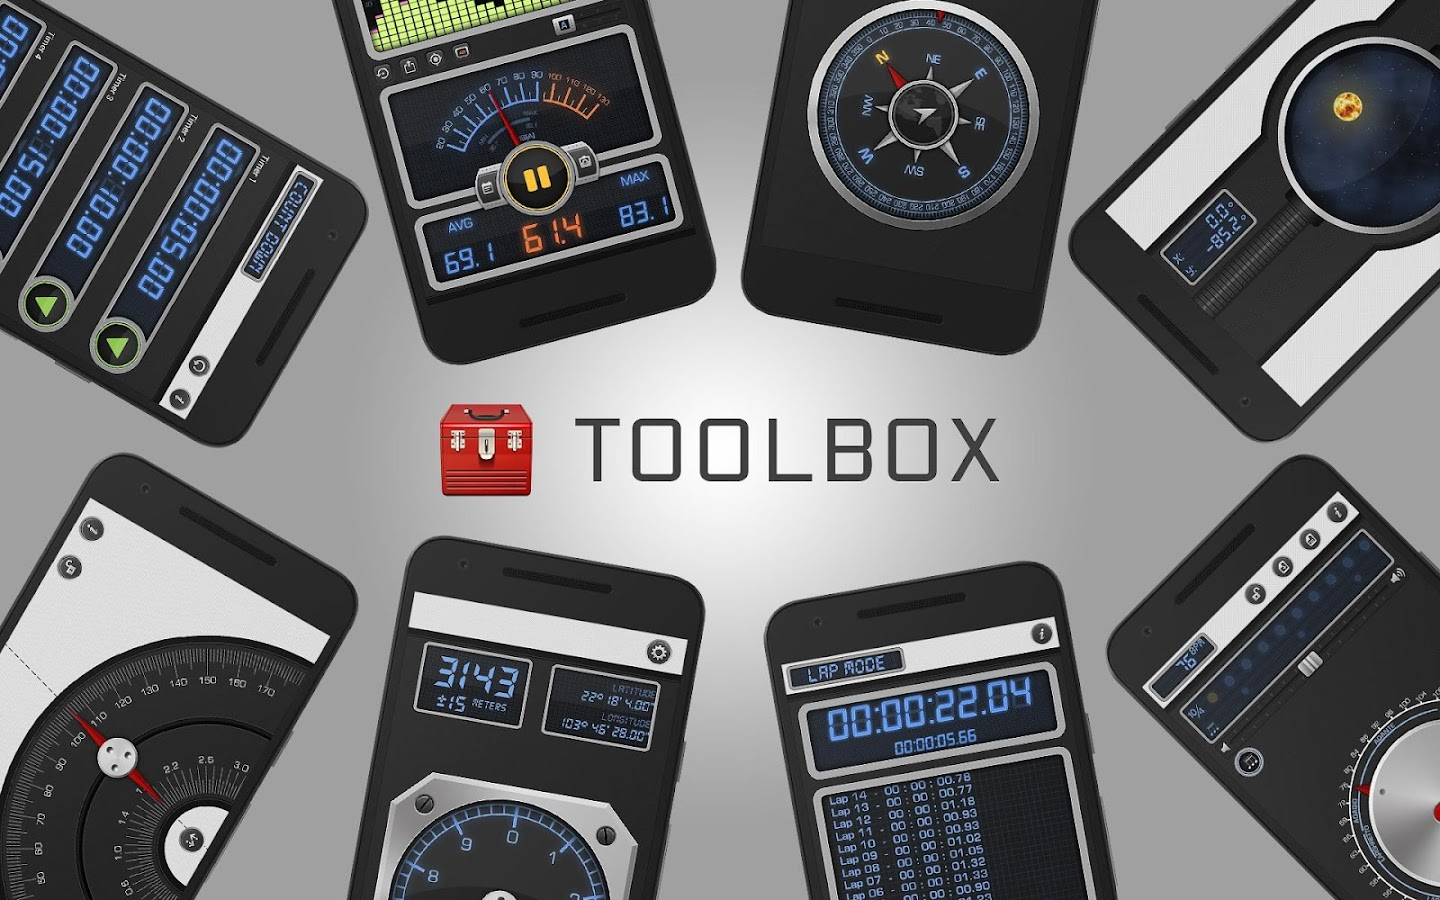 Toolbox PRO - Smart, Handy Measurement Tools- screenshot